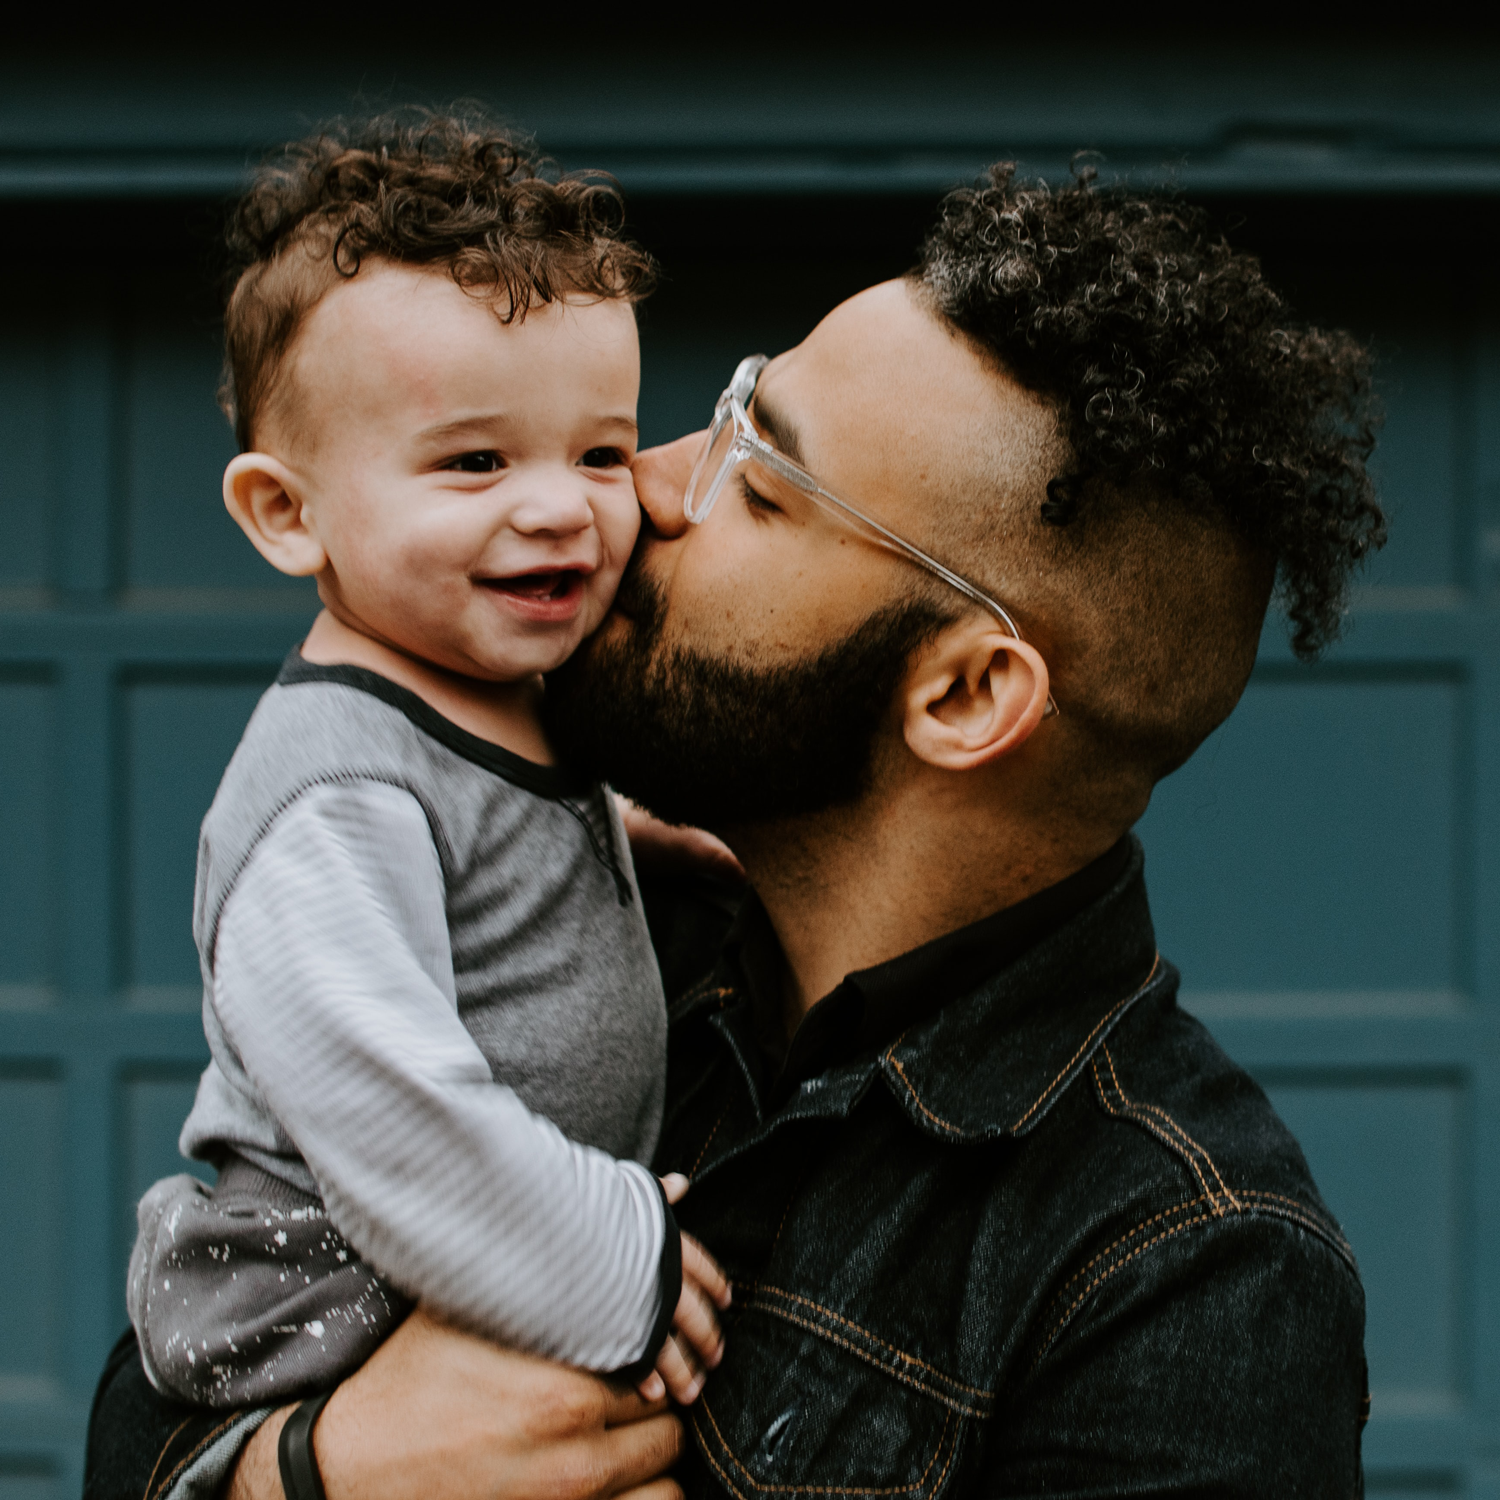 Black father holding baby and kissing him on the cheek.